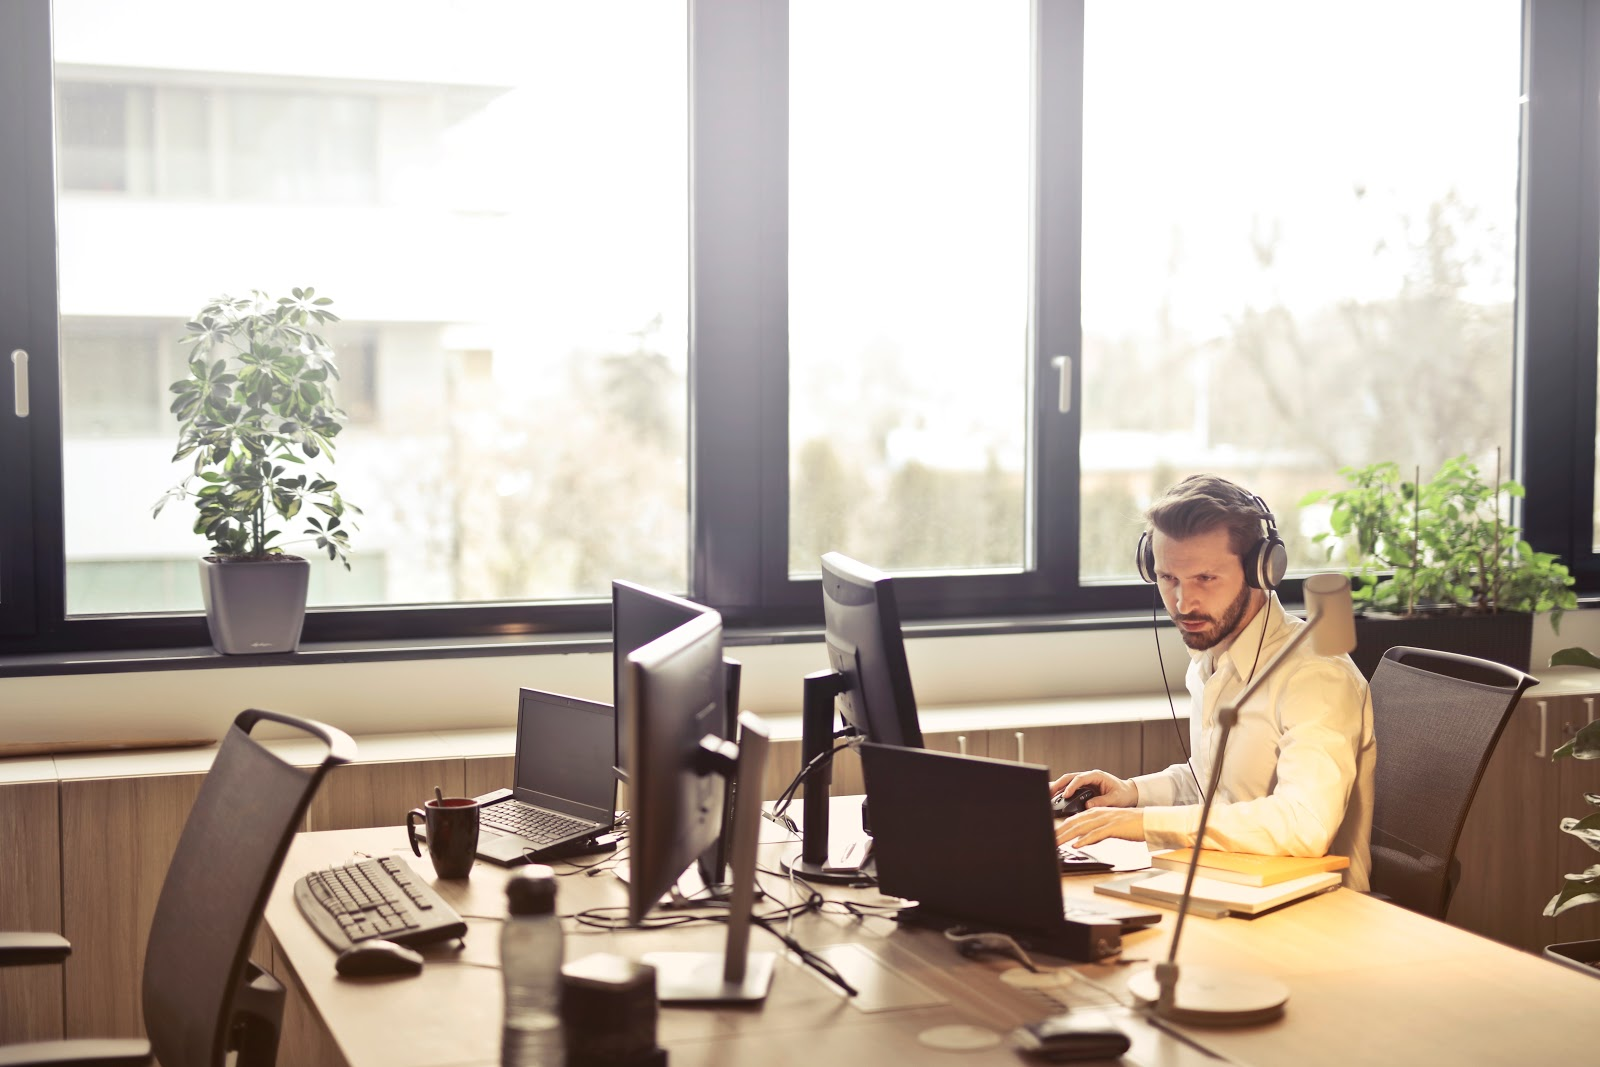 Man wearing headphones at computer in front of large window